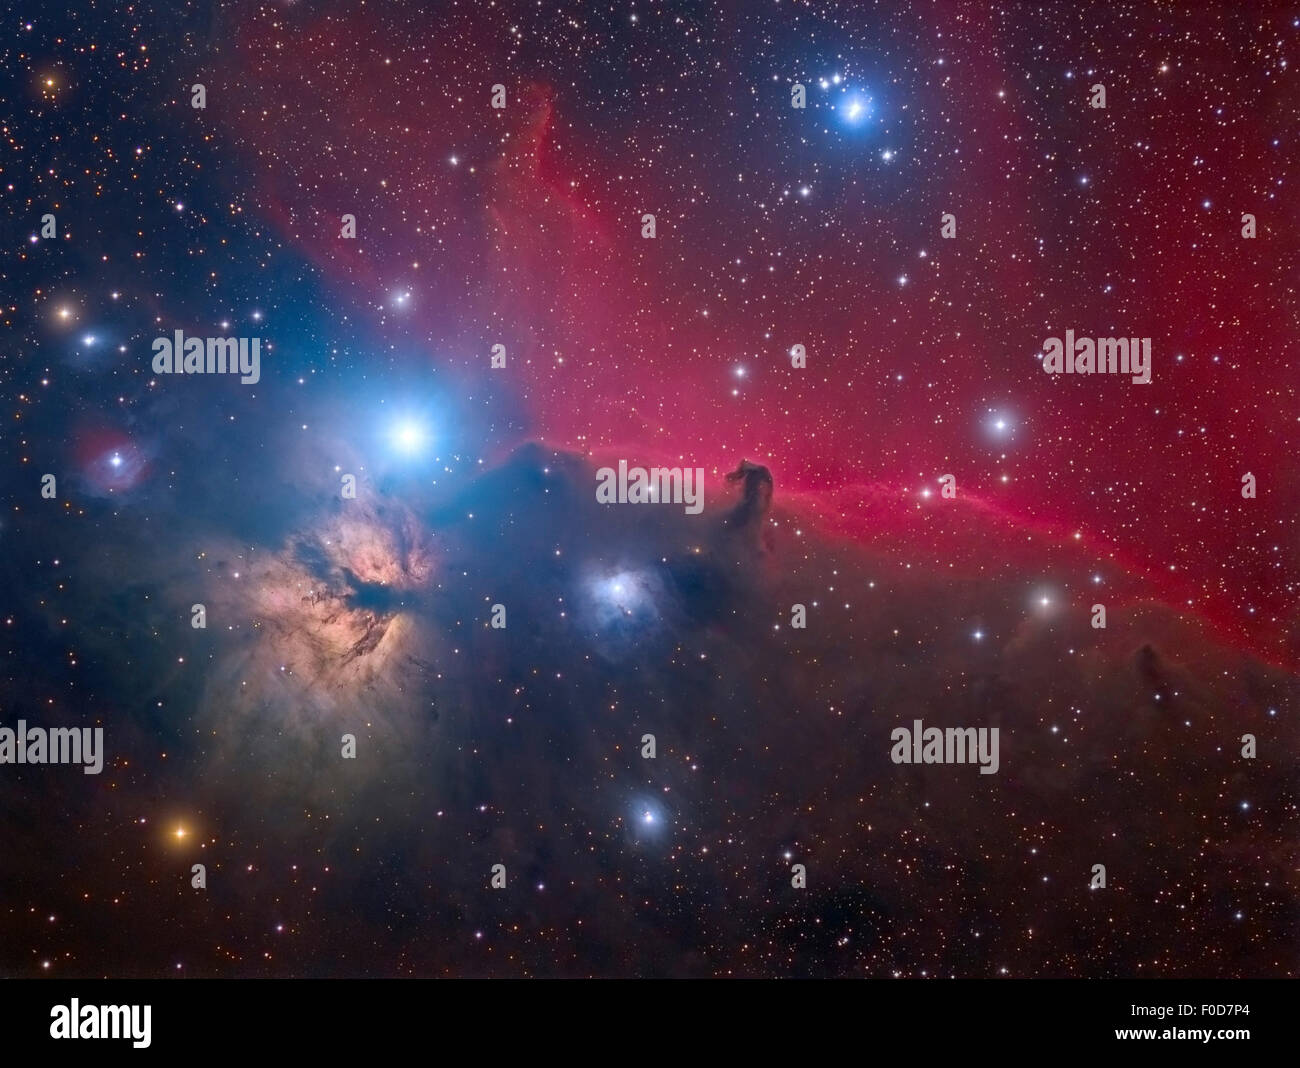 The Horsehead Nebula and Flame Nebula in the Orion constellation. - Stock Image